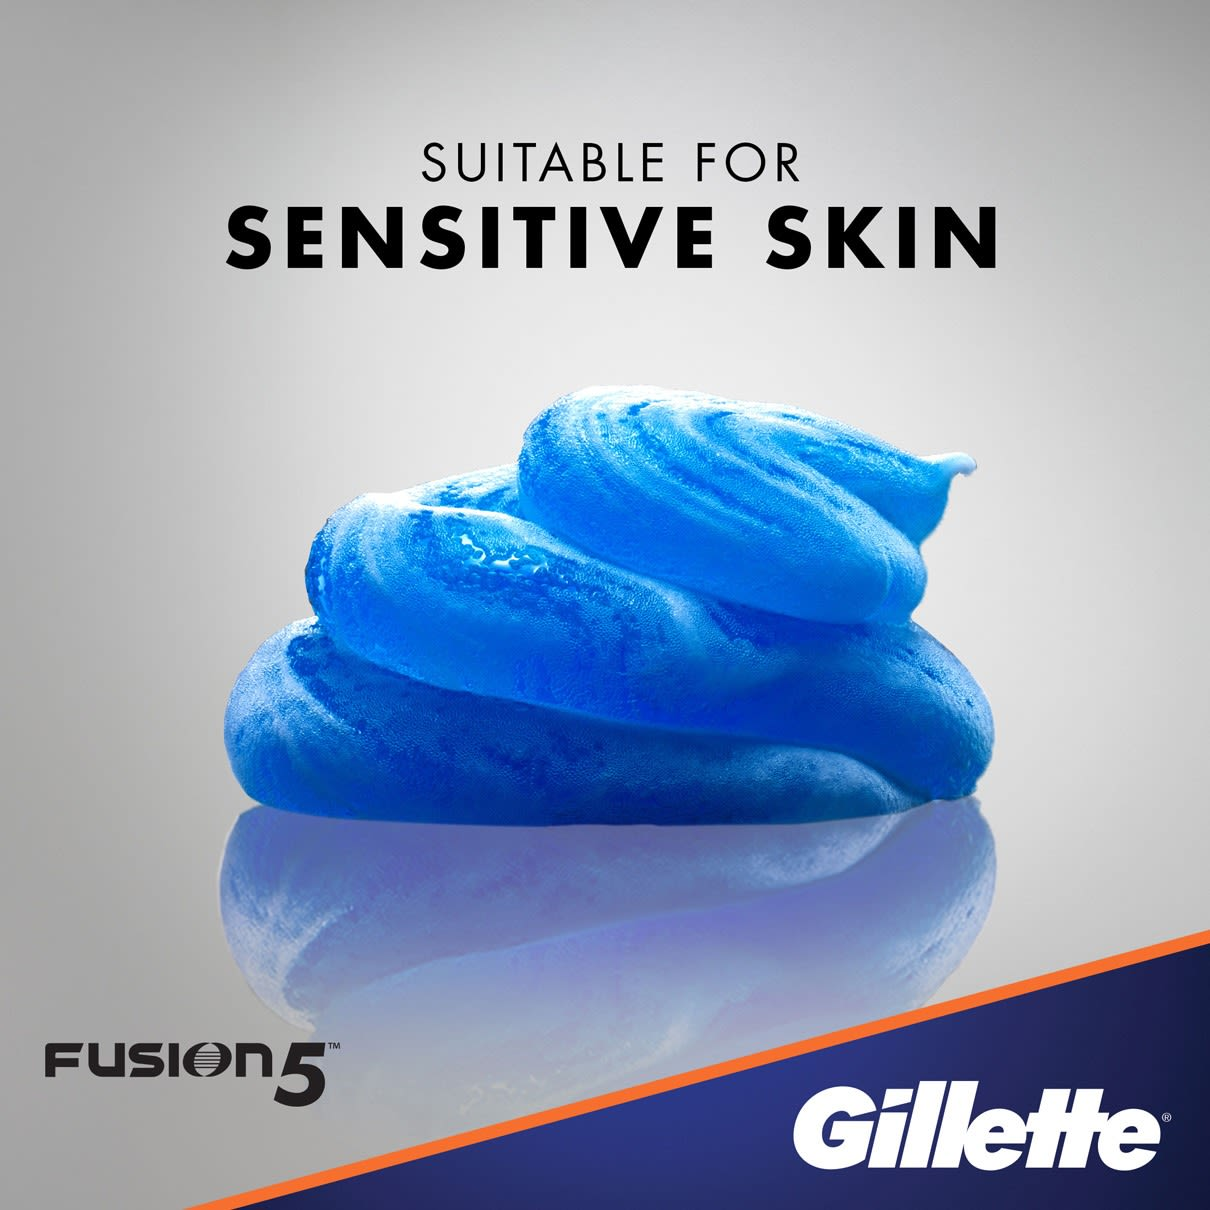 Suitable for sensitive skin I  Gillette Fusion5 Ultra Sensitive Shave Gel